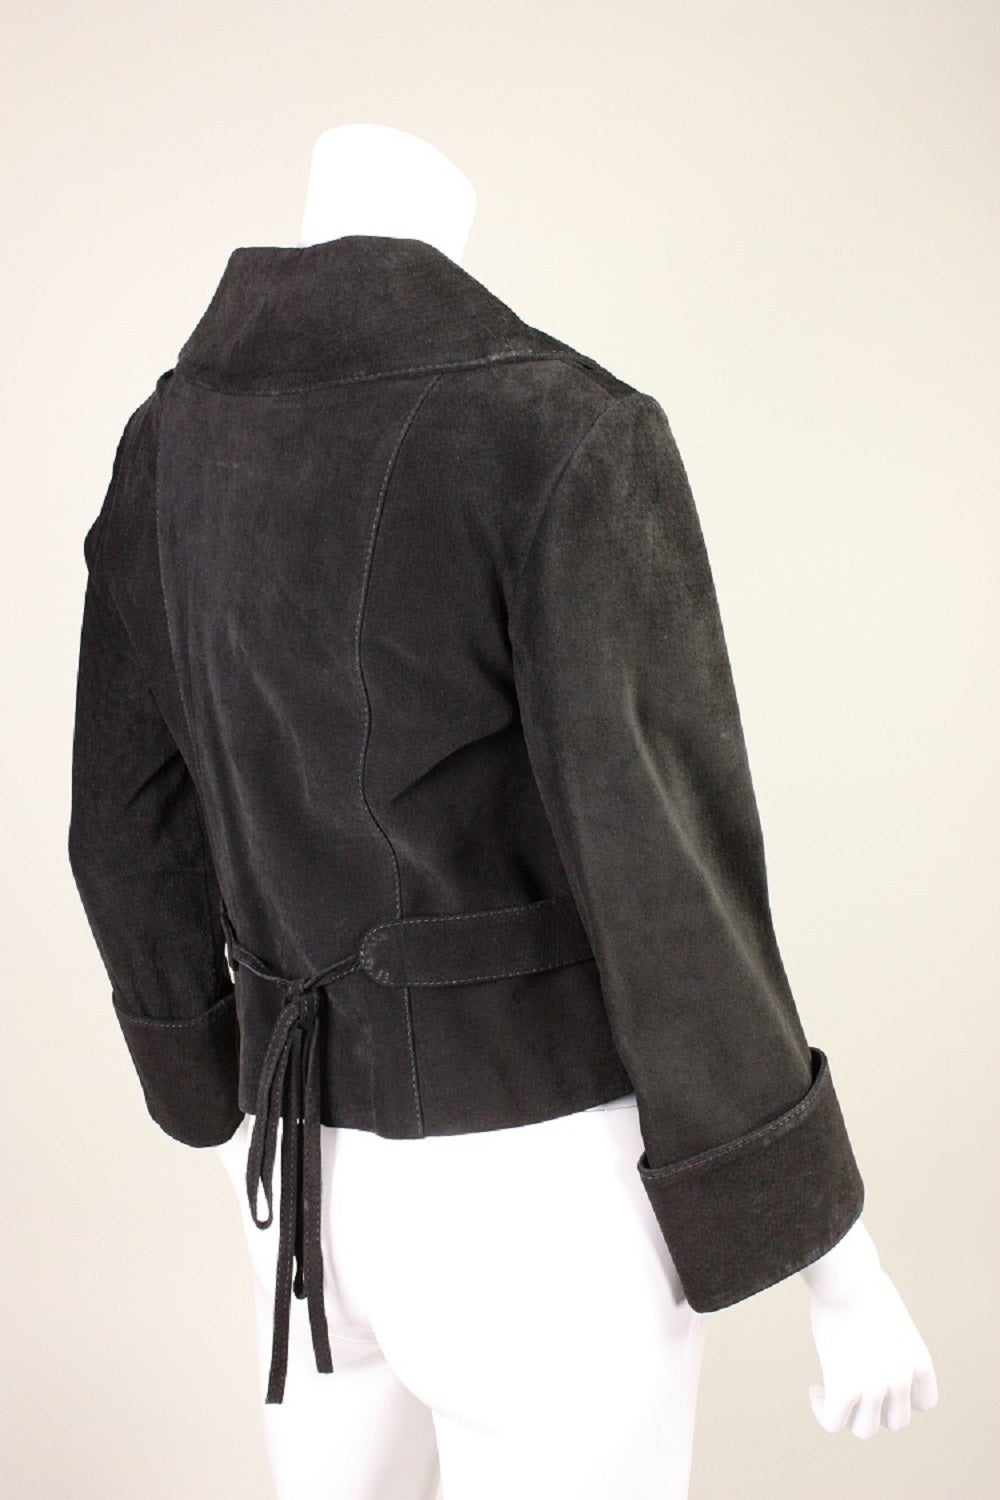 1970's Bill Gibb Suede Jacket & Vest with Embroidery 3